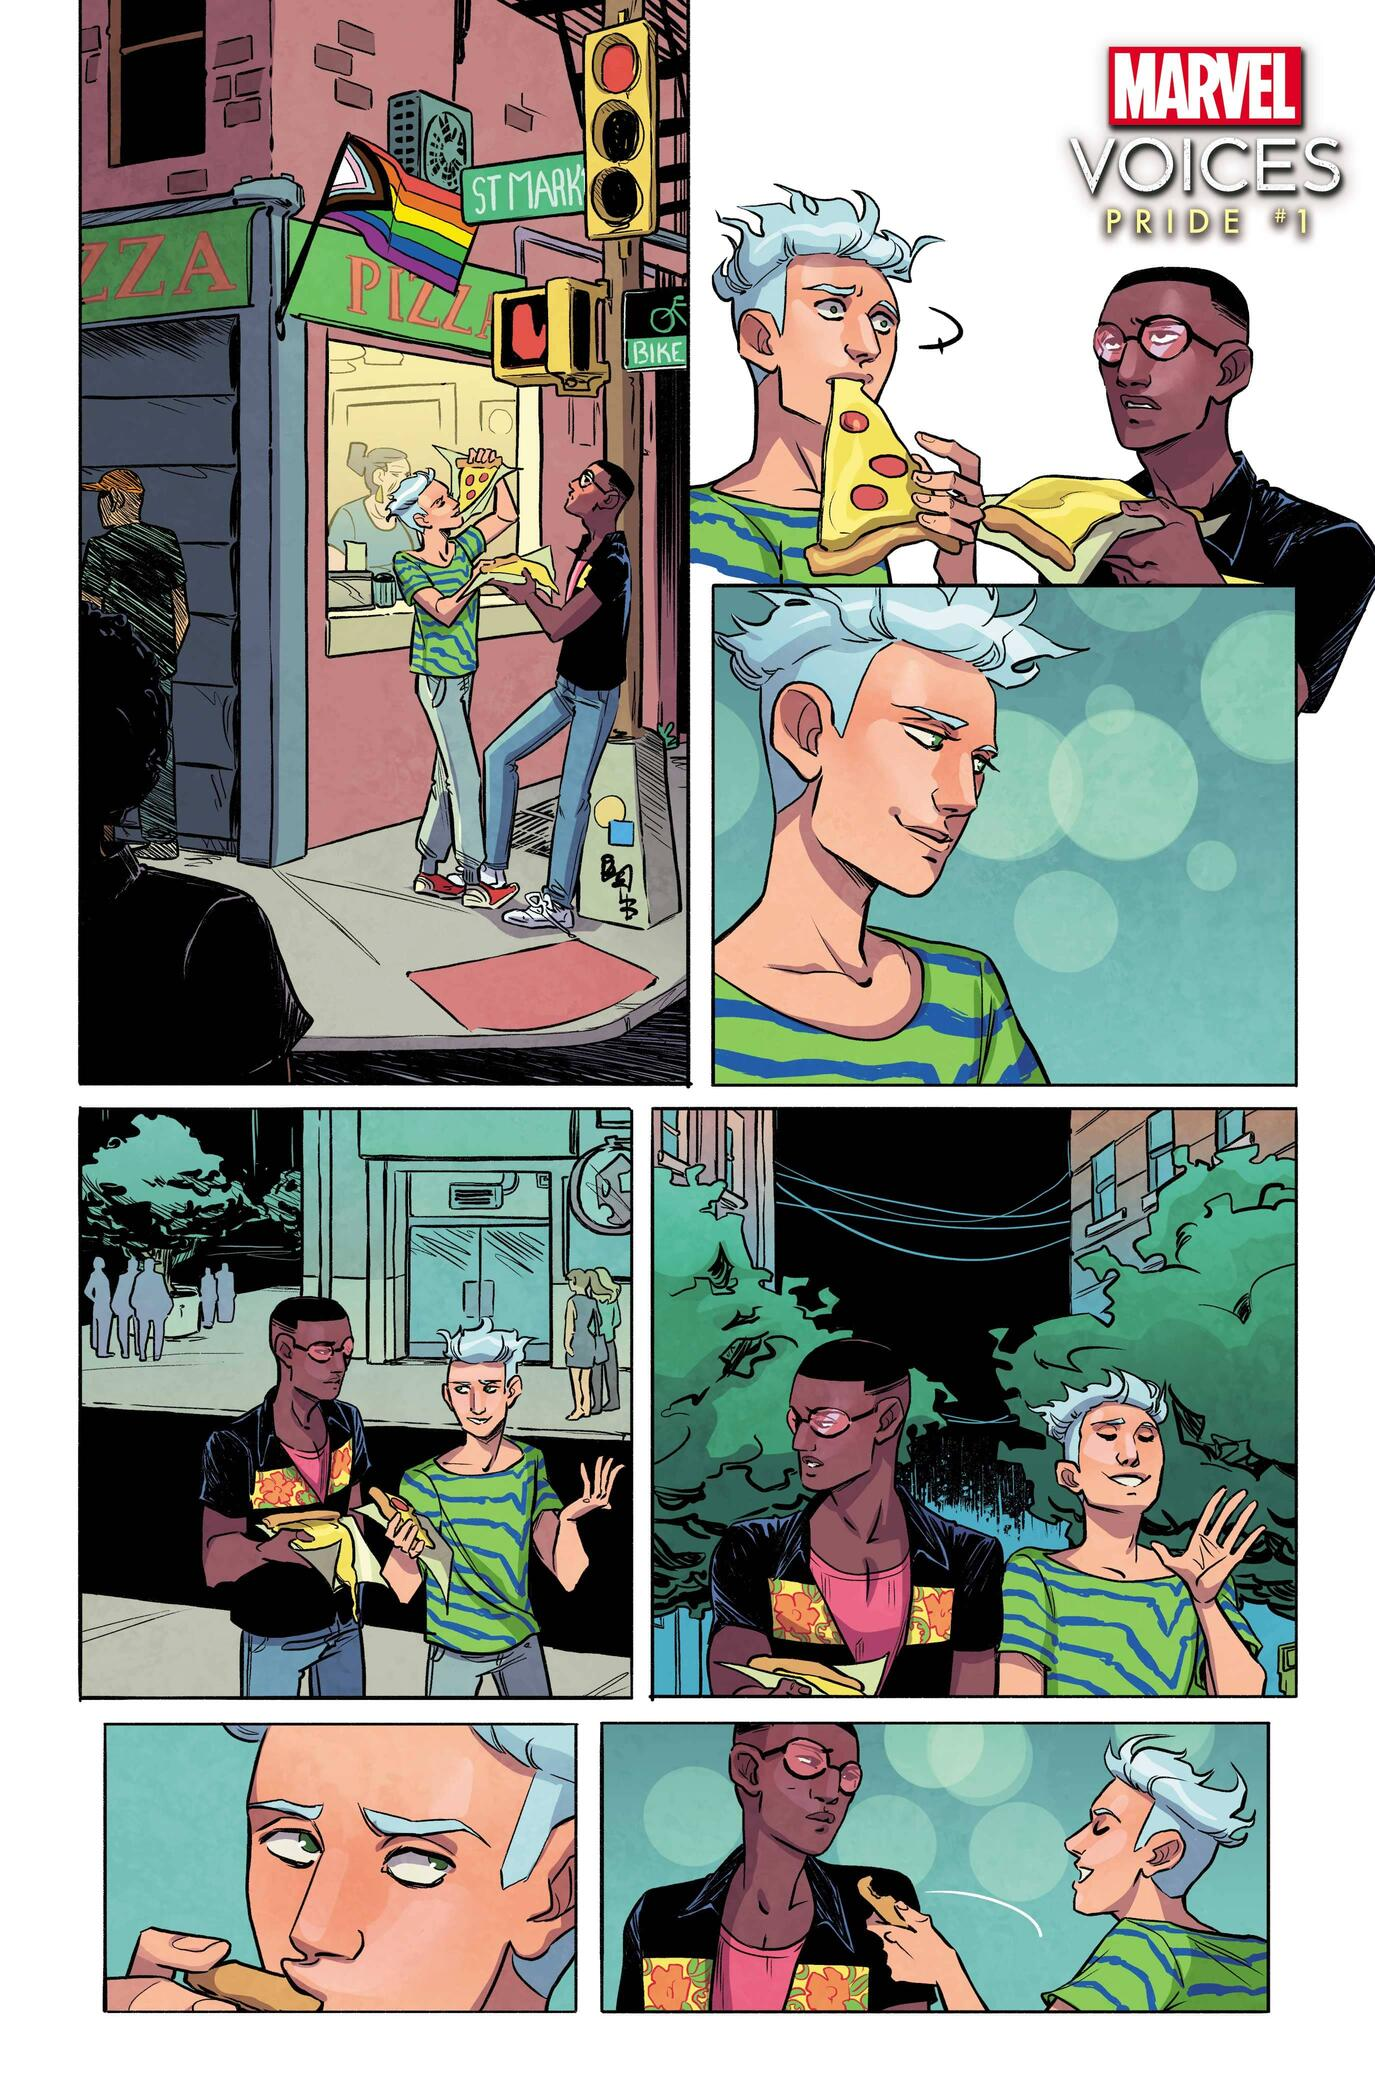 MARVEL'S VOICES: PRIDE #1 preview art by Jen Hickman, colors by Brittany Peer